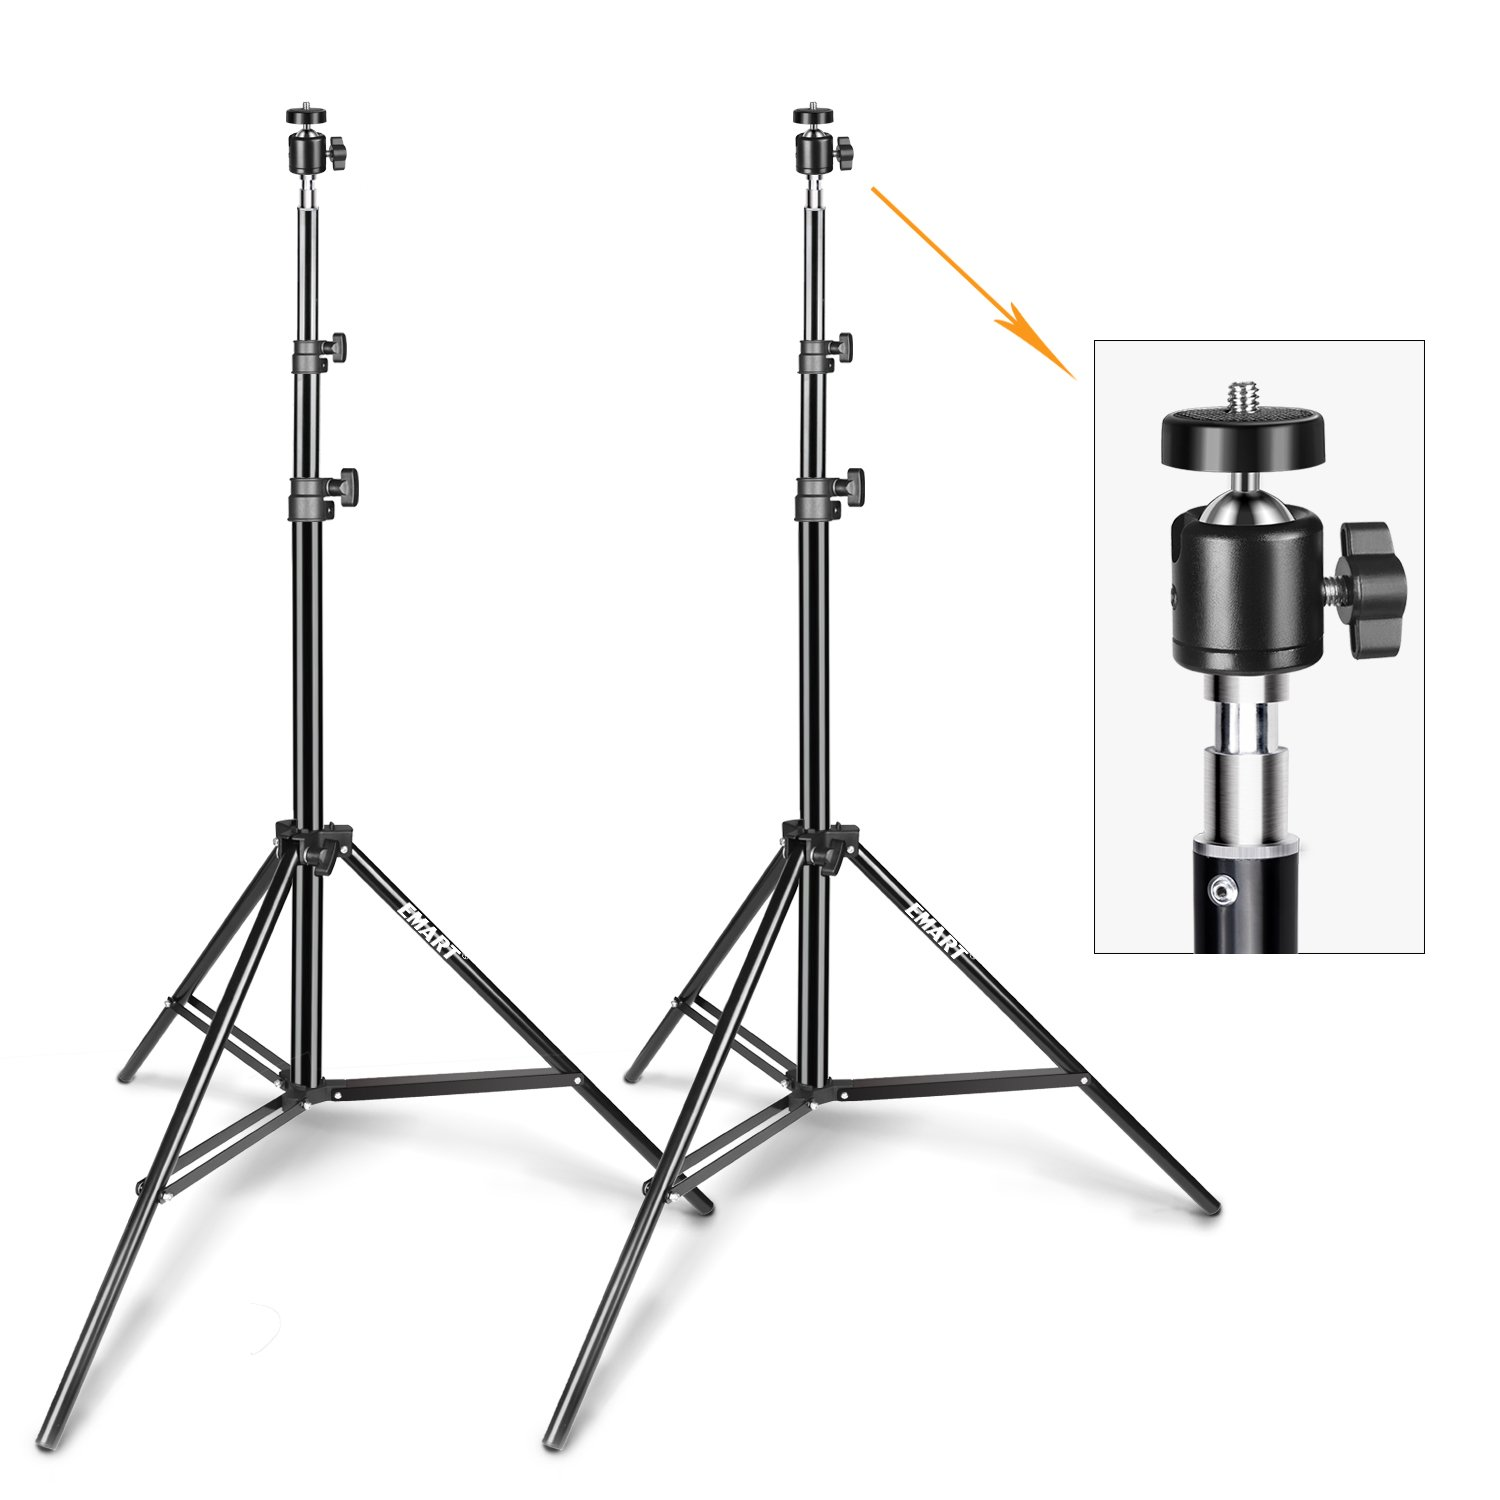 Emart 6.2ft Photography Light Stand with Hotshoe Adapter for Photo Video Studio, HTC Vive, Softbox, Reflector, etc. (2 Pack)